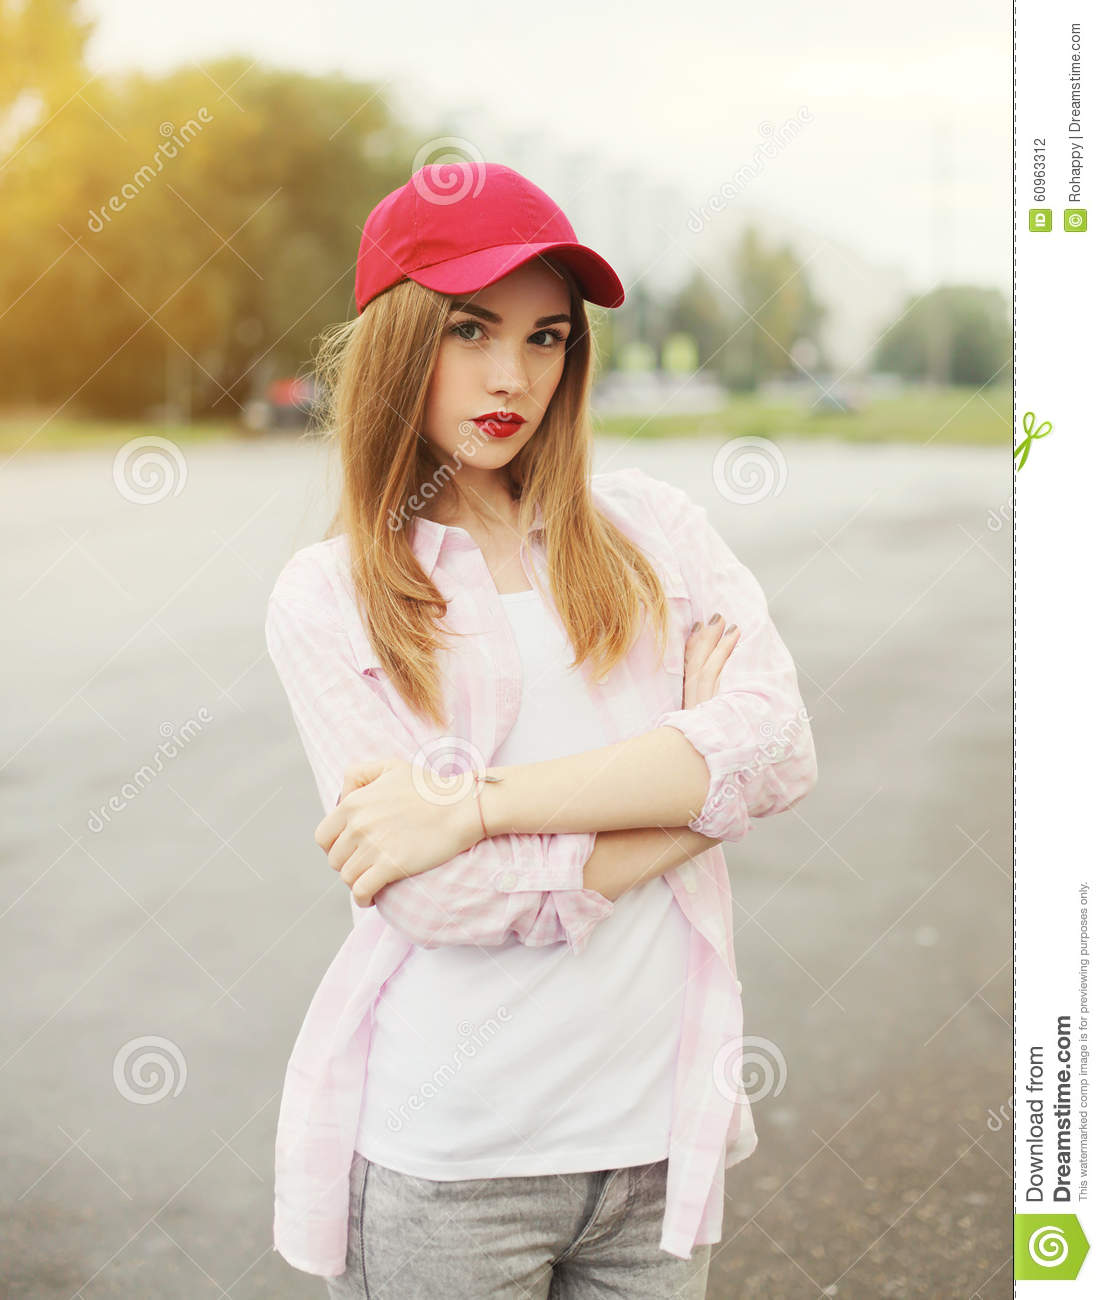 Pretty Young Girl Wearing A Shirt And Red Cap Stock Photo - Image of ... 940afee8e555